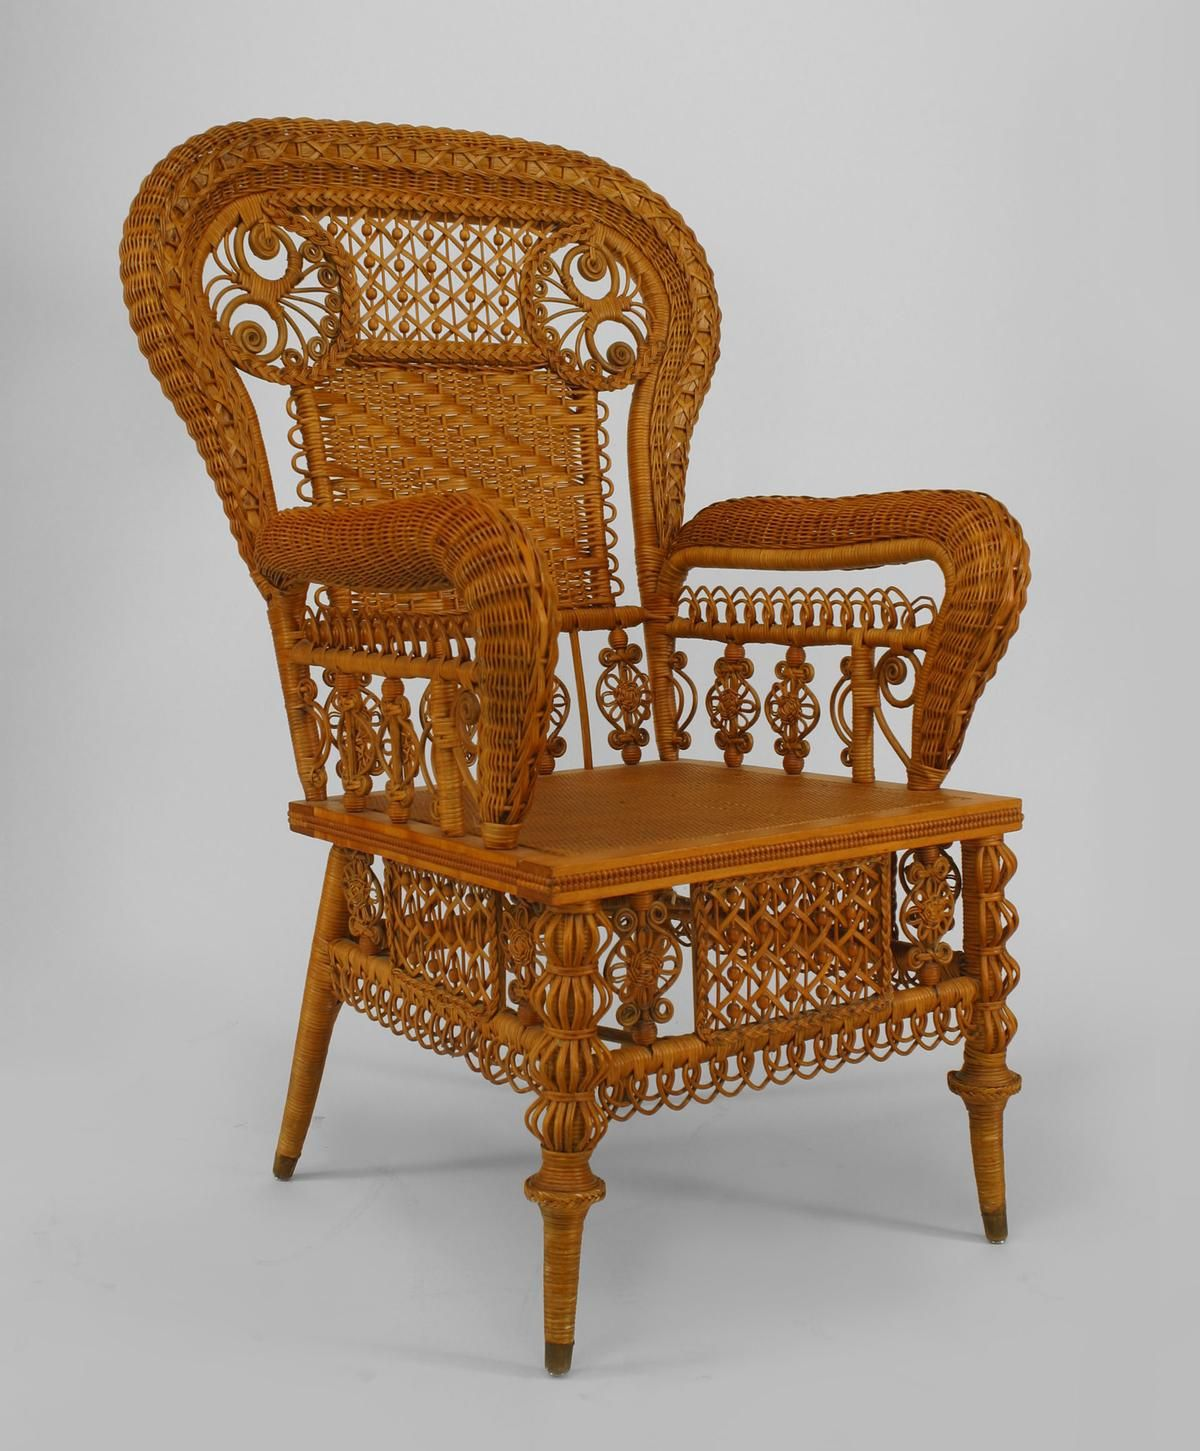 pre tables and chairs places to rent chair covers near me american victorian 1897 ornate natural wicker arm